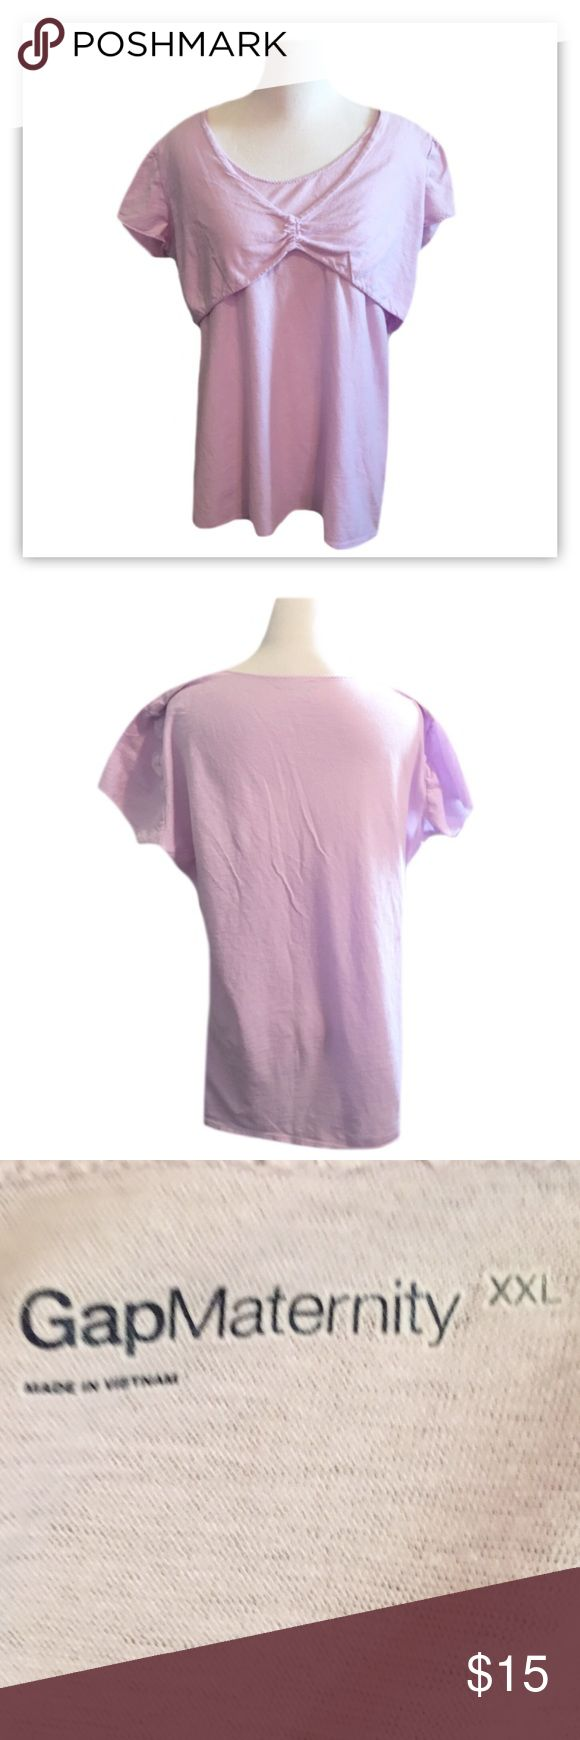 """Gap Maternity And Nursing Short Sleeve Top ◾️Gently used Gap Maternity/Nursing Short Sleeve Top ◾️Light purple ◾️The top lifts up for breastfeeding  ◾️Size XXL ◾️Made with 100% Cotton ◾️Length is 26"""" ◾️Bundle and Save  ◾️Offers are Always welcomed GAP Tops"""